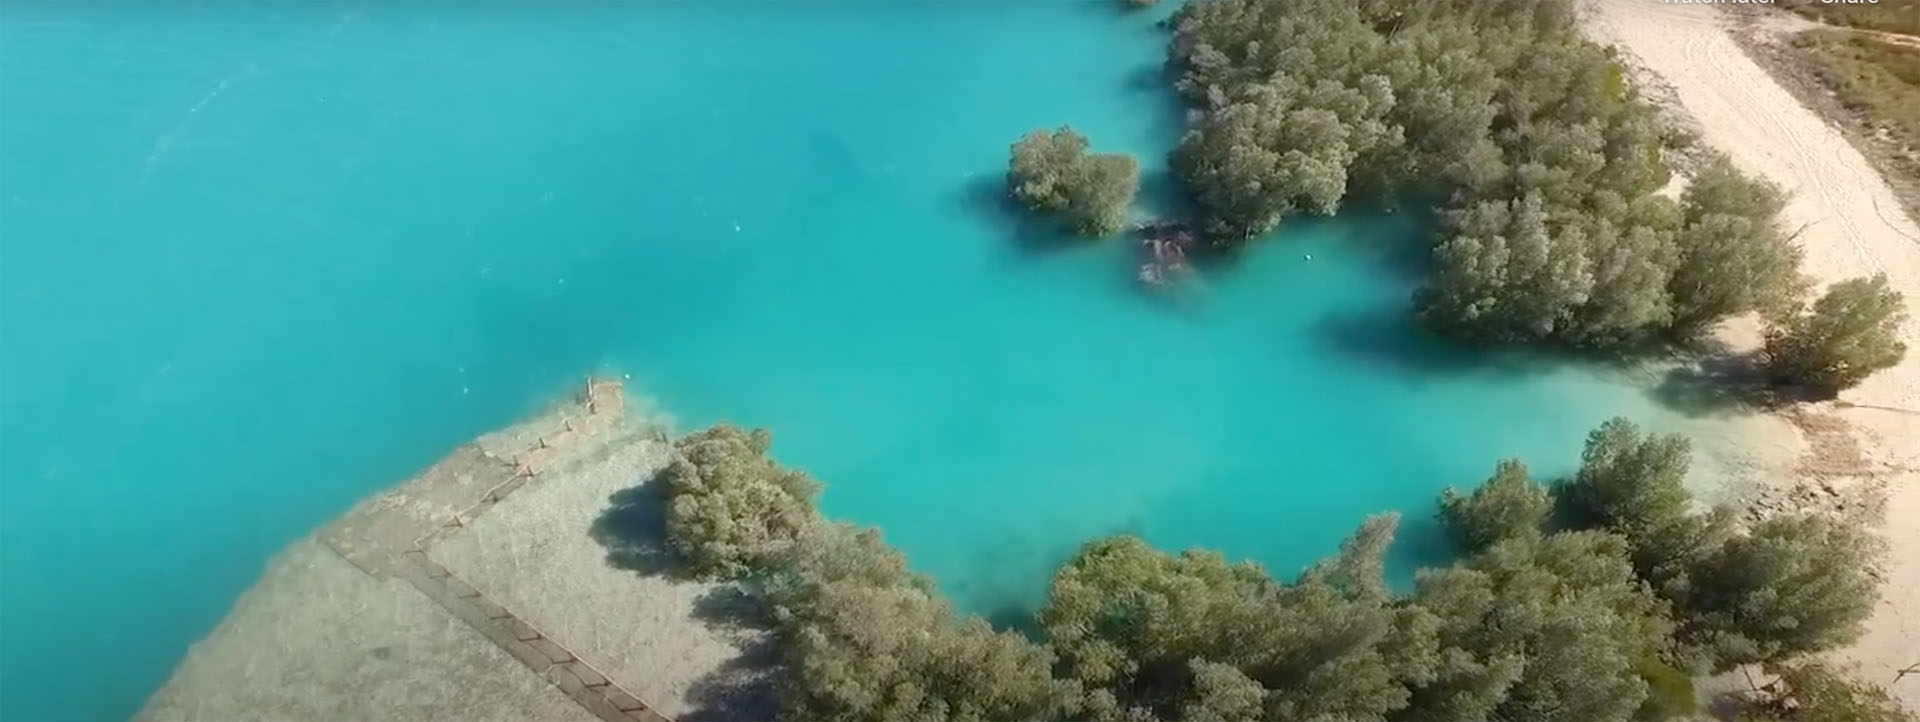 WILLIE CREEK PEARL FARM TOURS aerial turquoise waters image